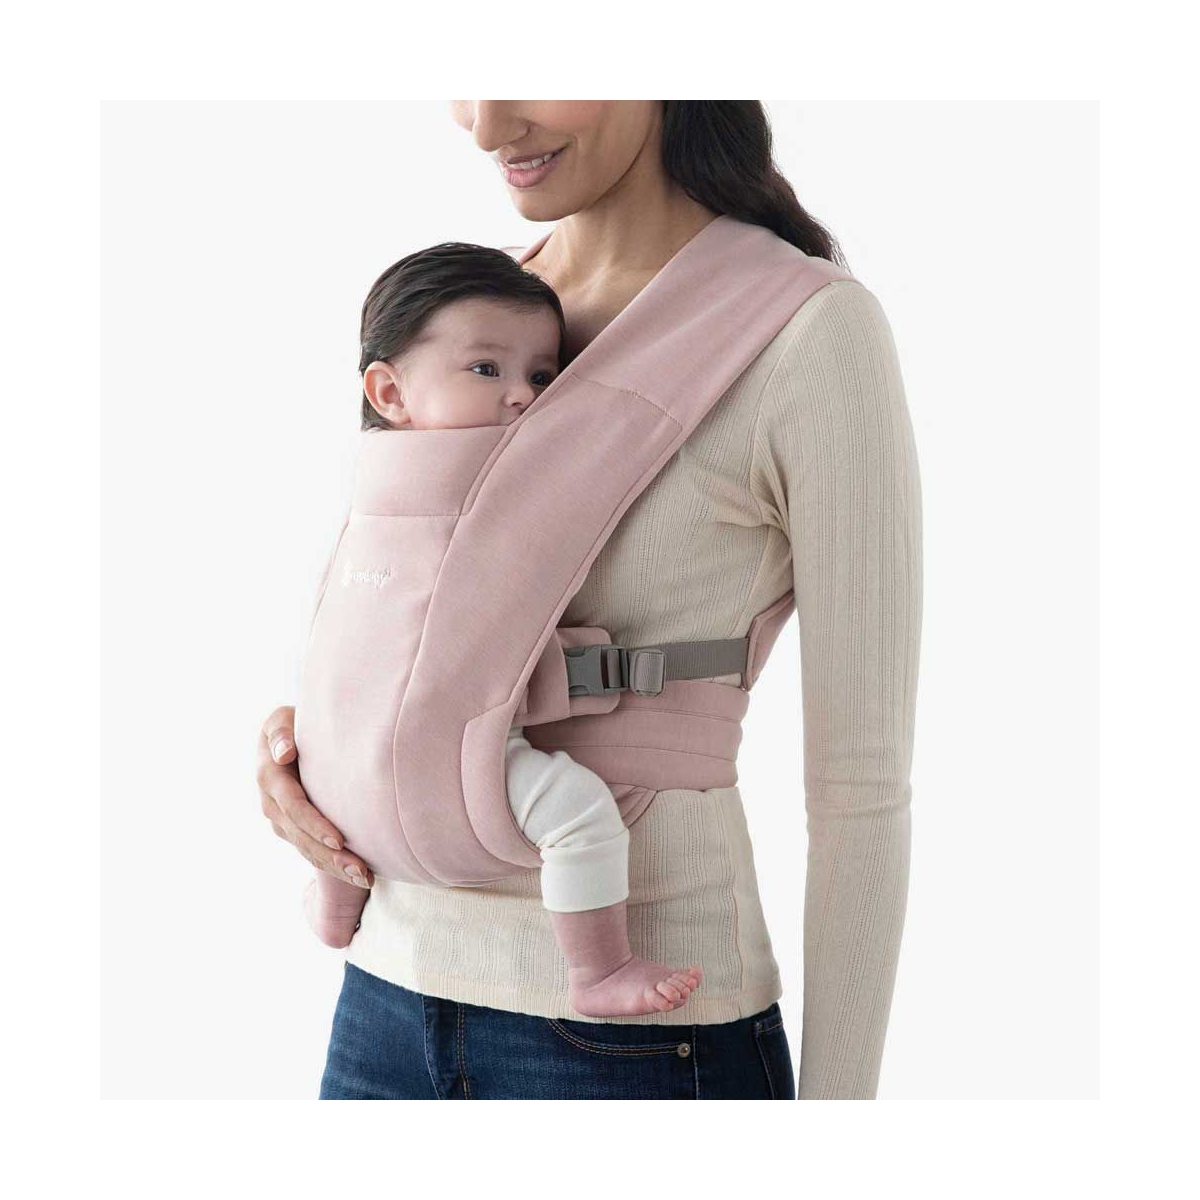 Ergobaby Embrace Baby Carrier-Blush Pink (2021)